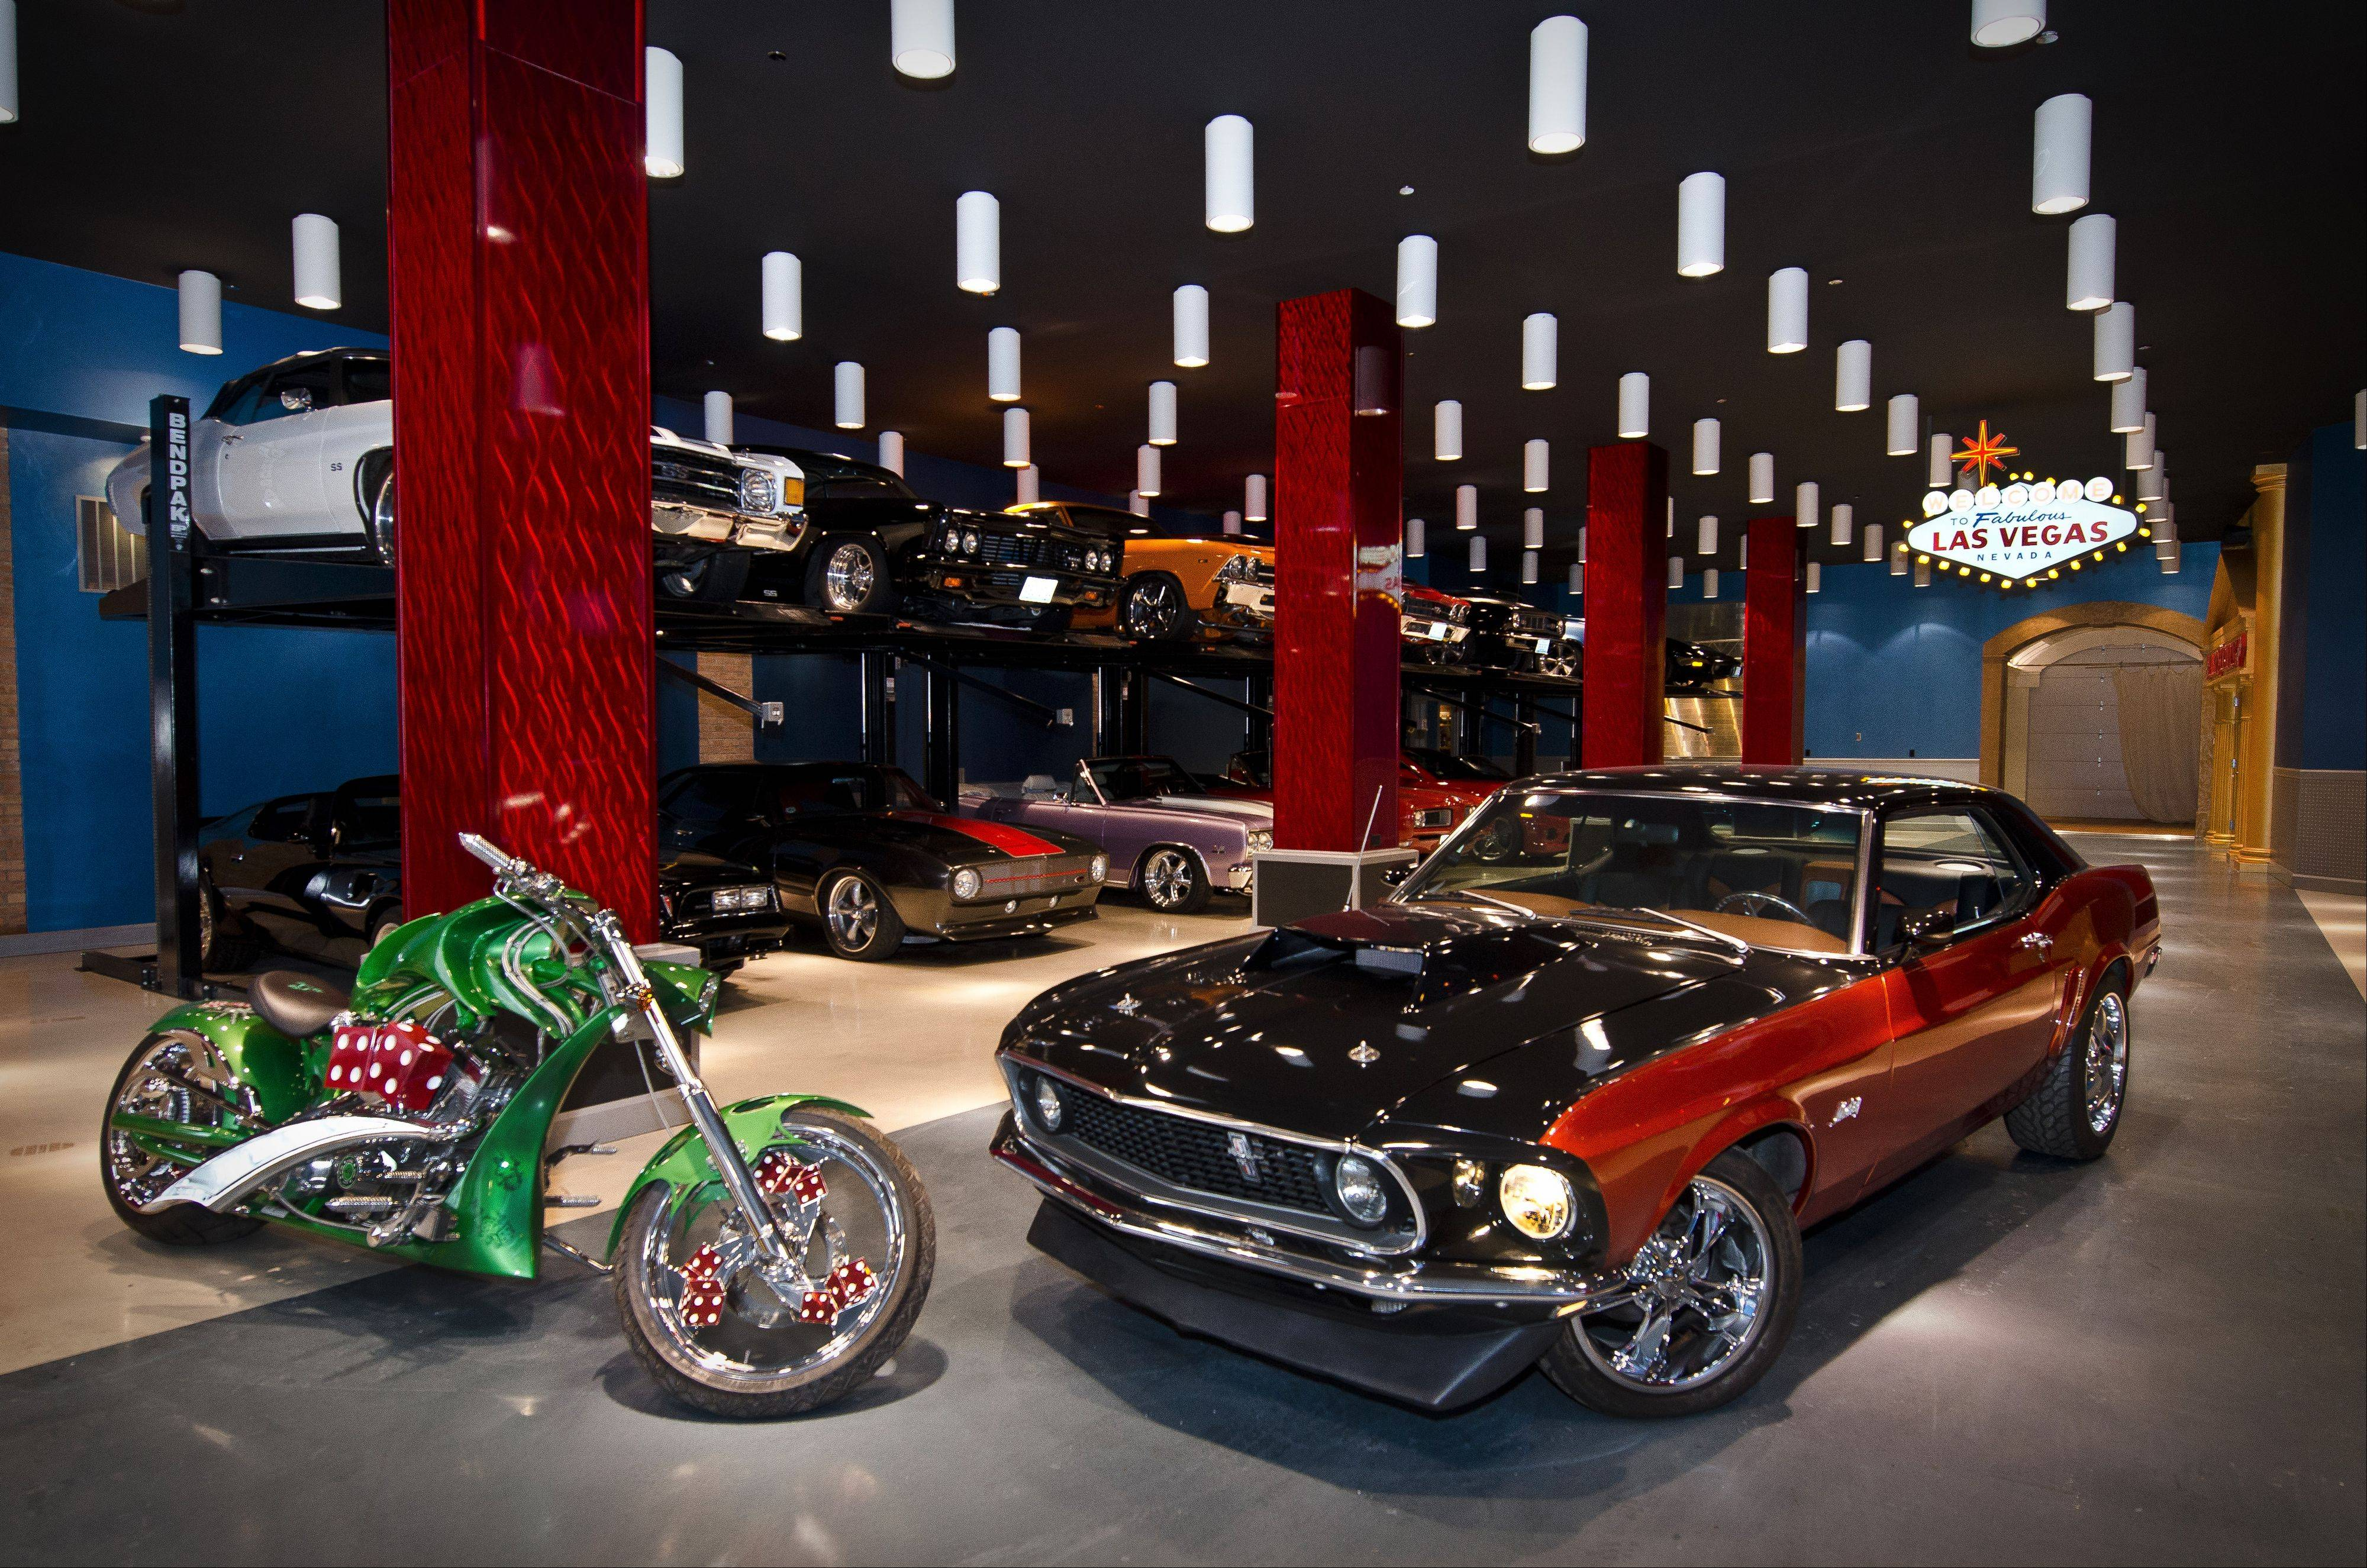 Francis Wisniewski of Chicago converted a warehouse into a Las Vegas-themed playhouse to hold his muscle car collection.